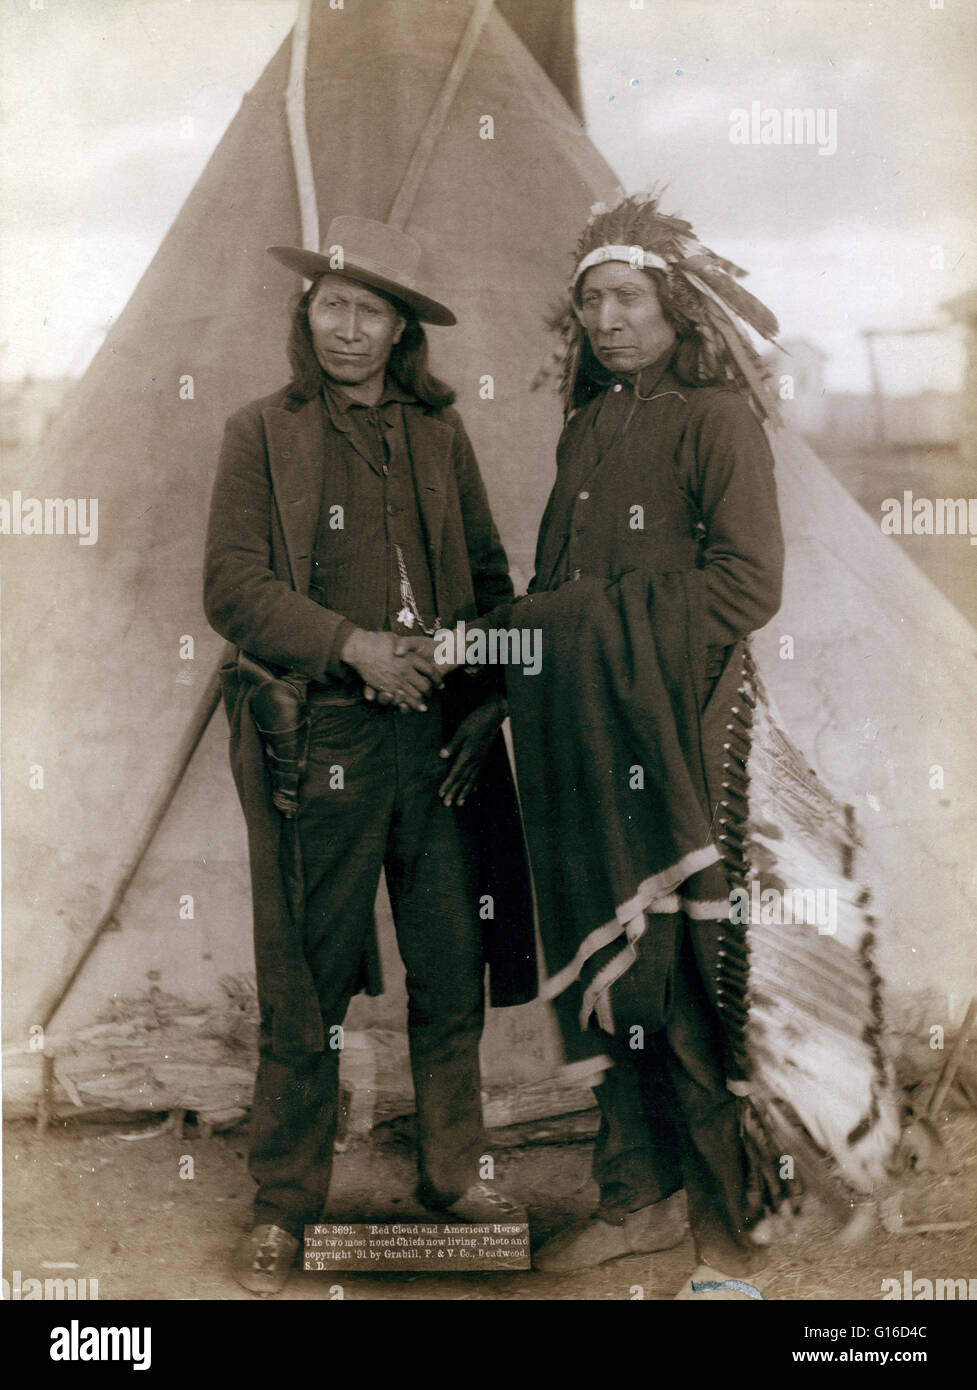 Two Oglala chiefs, American Horse (wearing western clothing and gun-in-holster) and Red Cloud (wearing headdress), - Stock Image